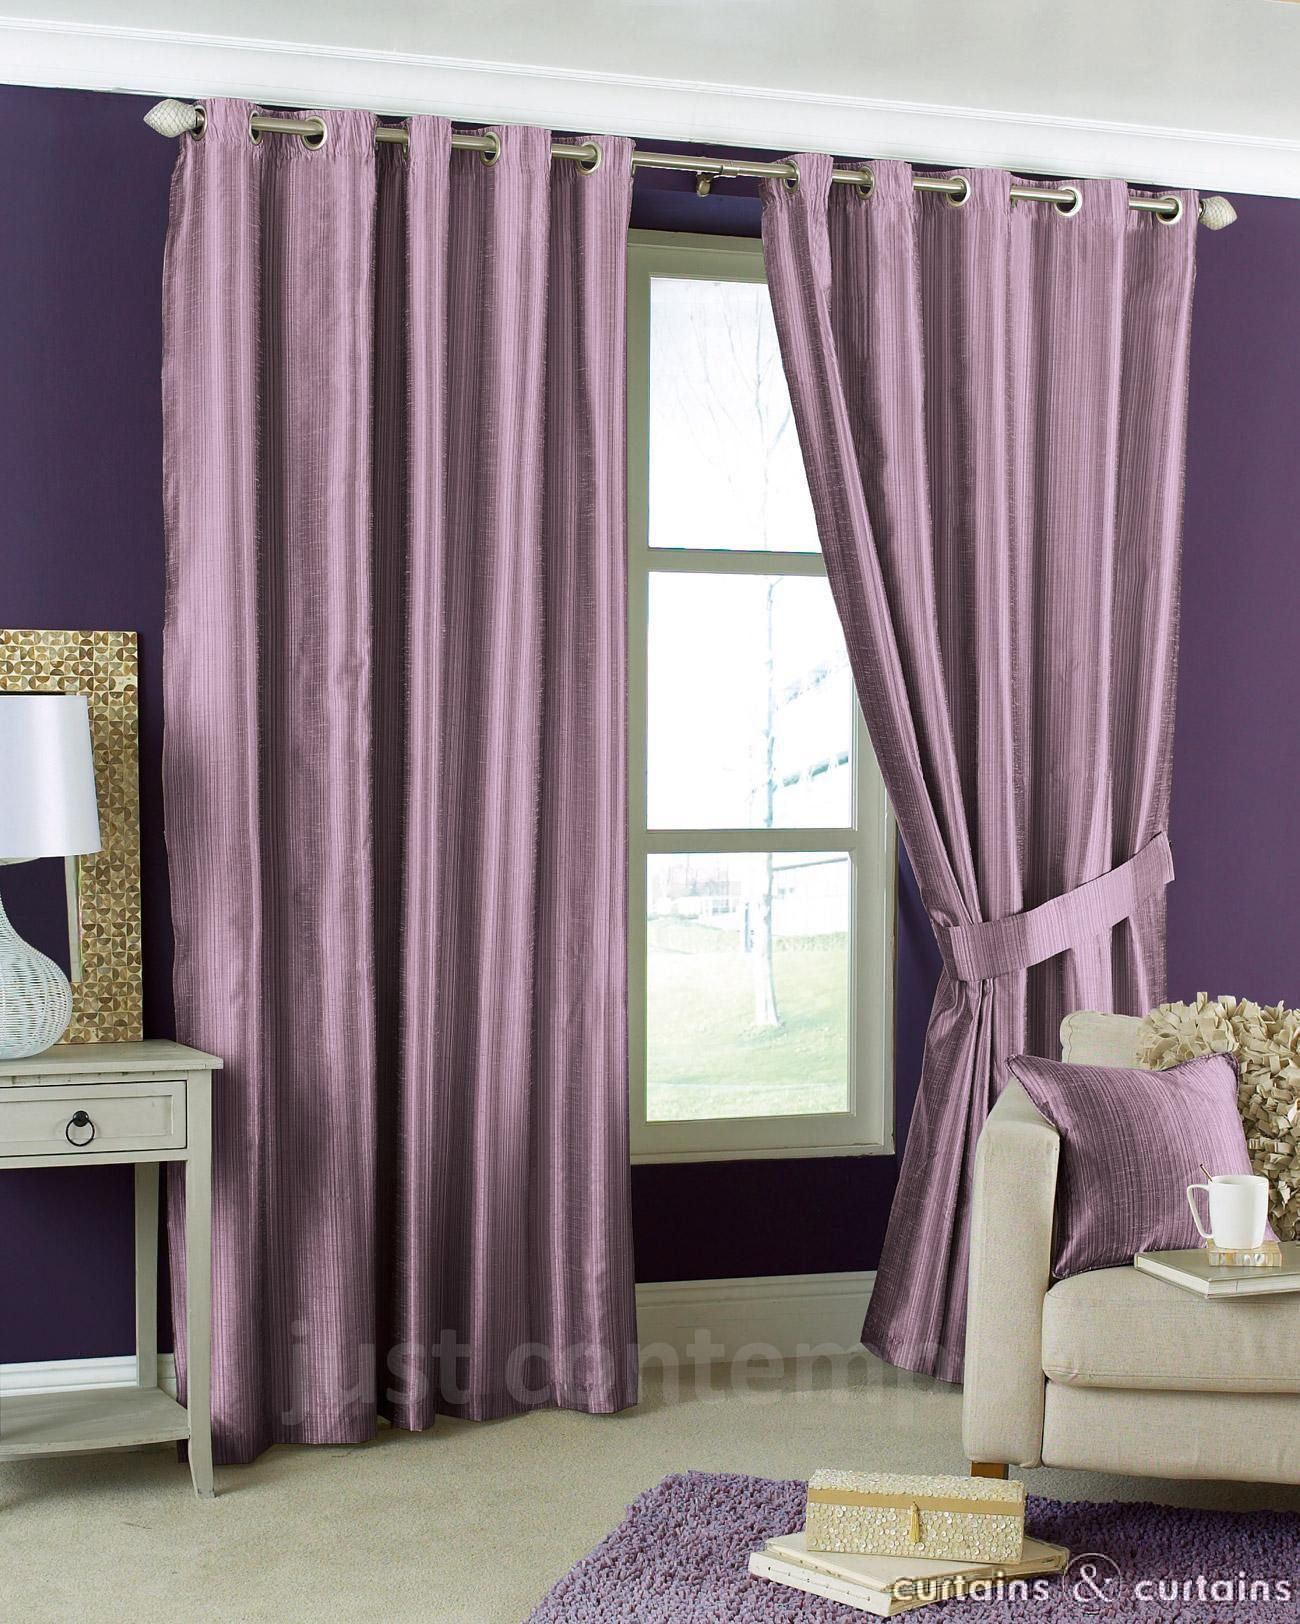 and for home curtain u uncategorized popular picture tfile improvement trend girls fascinating purple bedroom little curtains